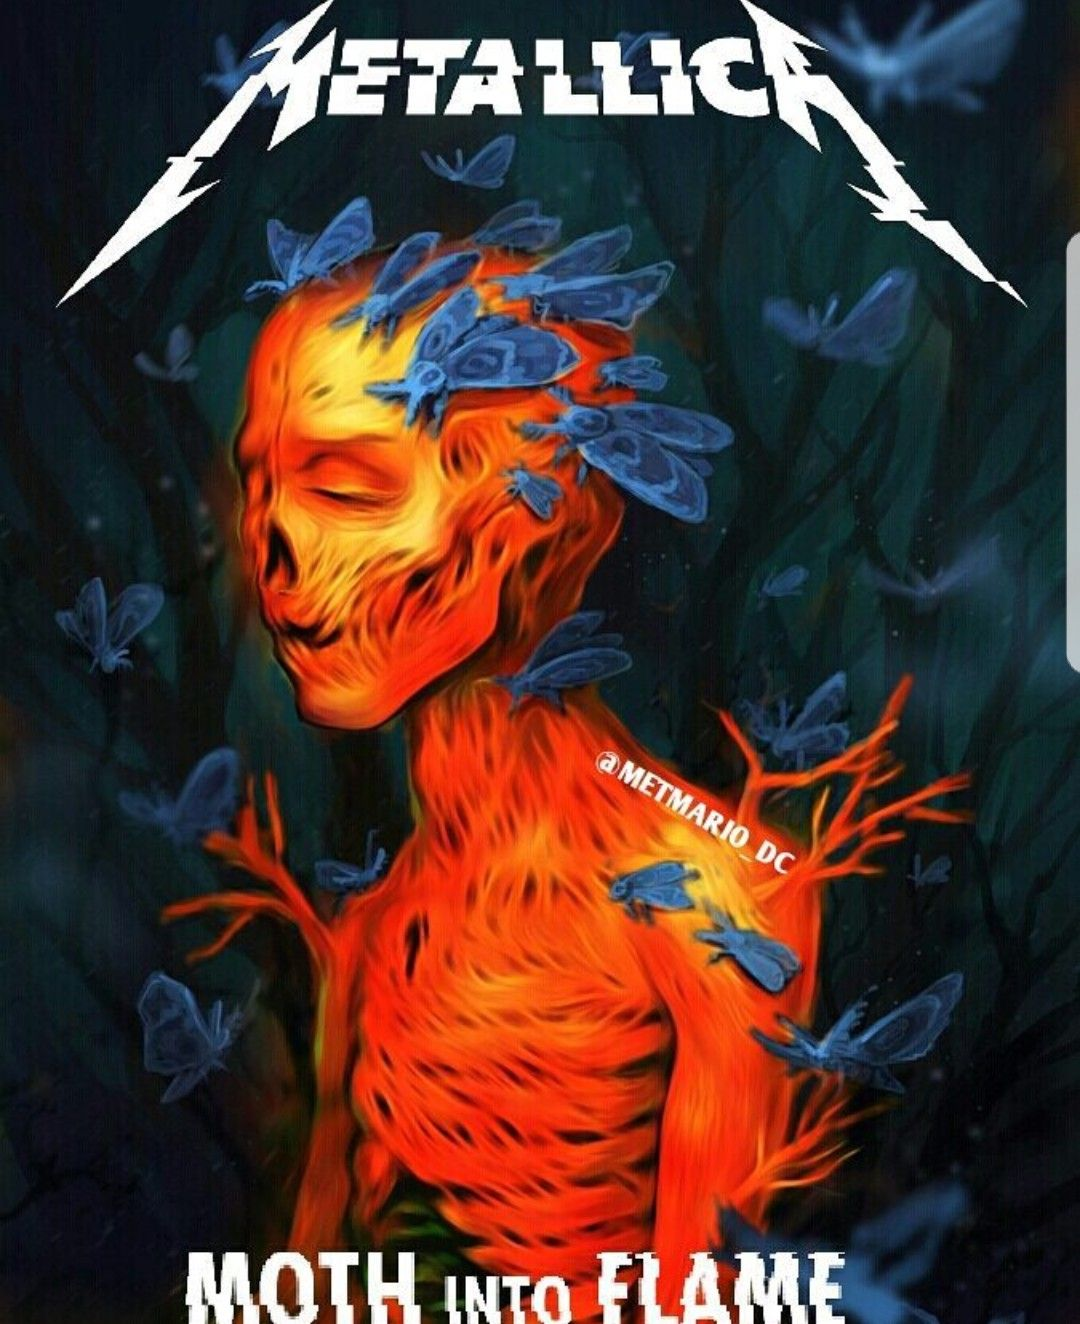 Pin by Lena Grace on METAL MY LOVE in 2019 | Metallica